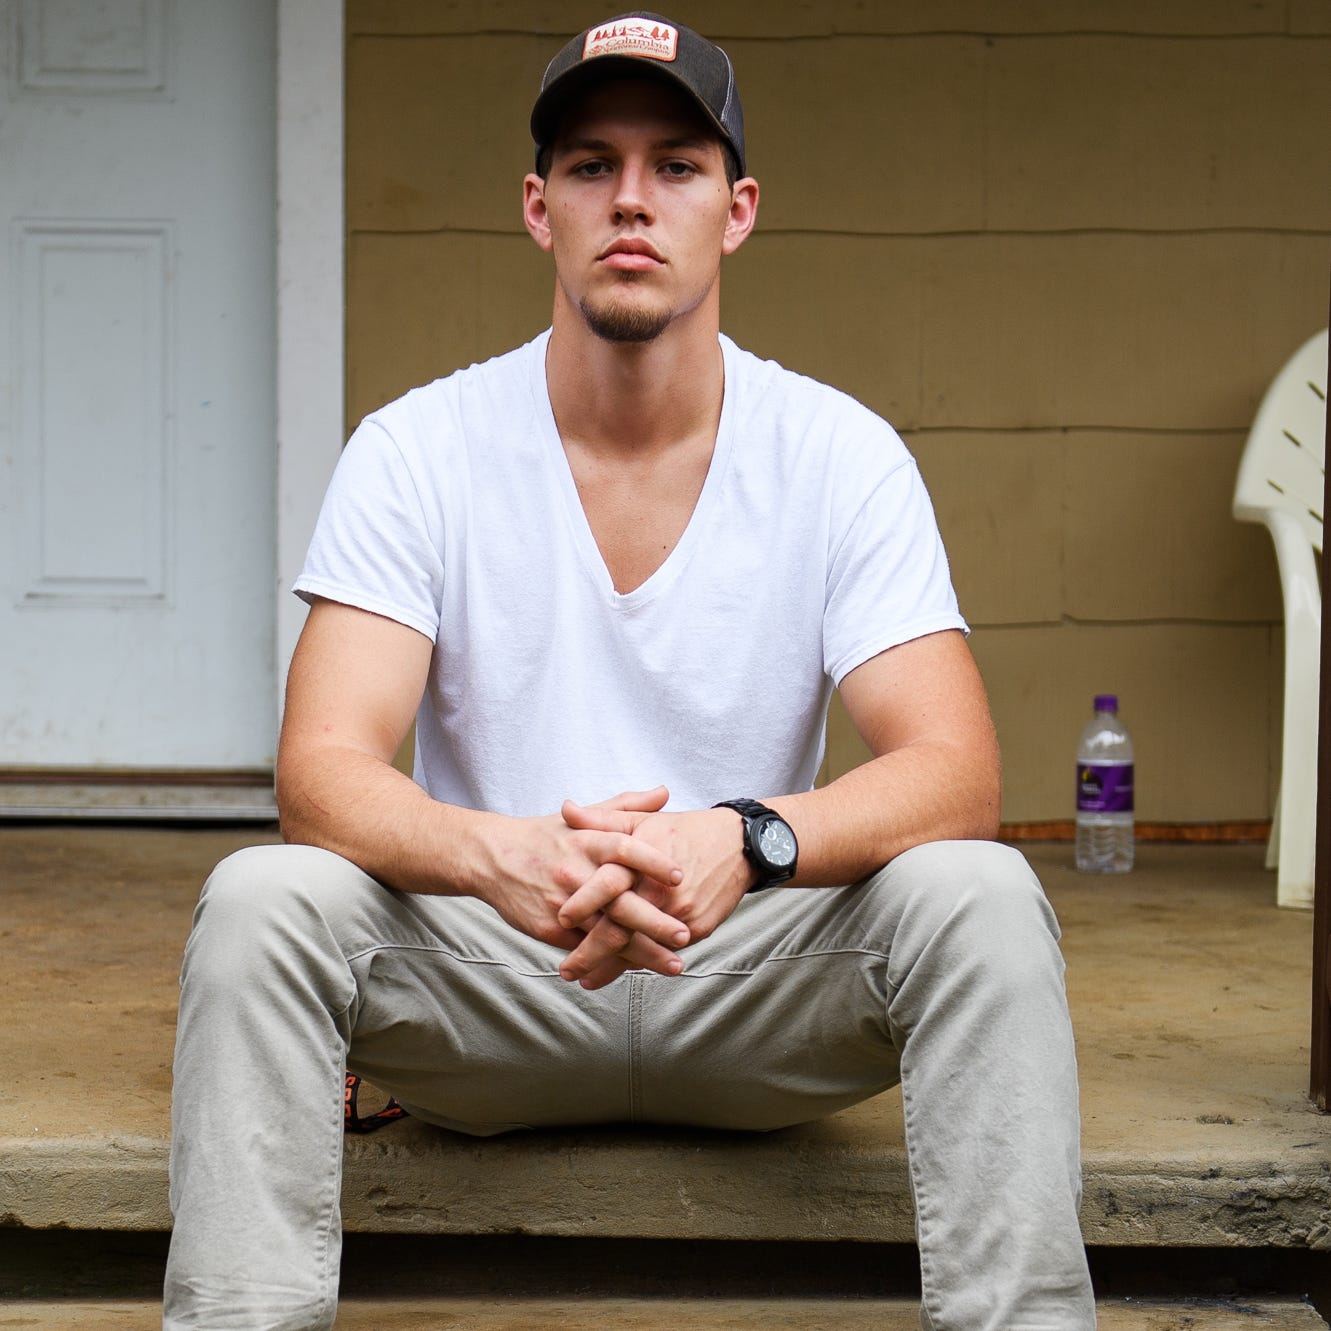 Amid Upstate's opioid epidemic, people with addiction struggle to find safe recovery homes